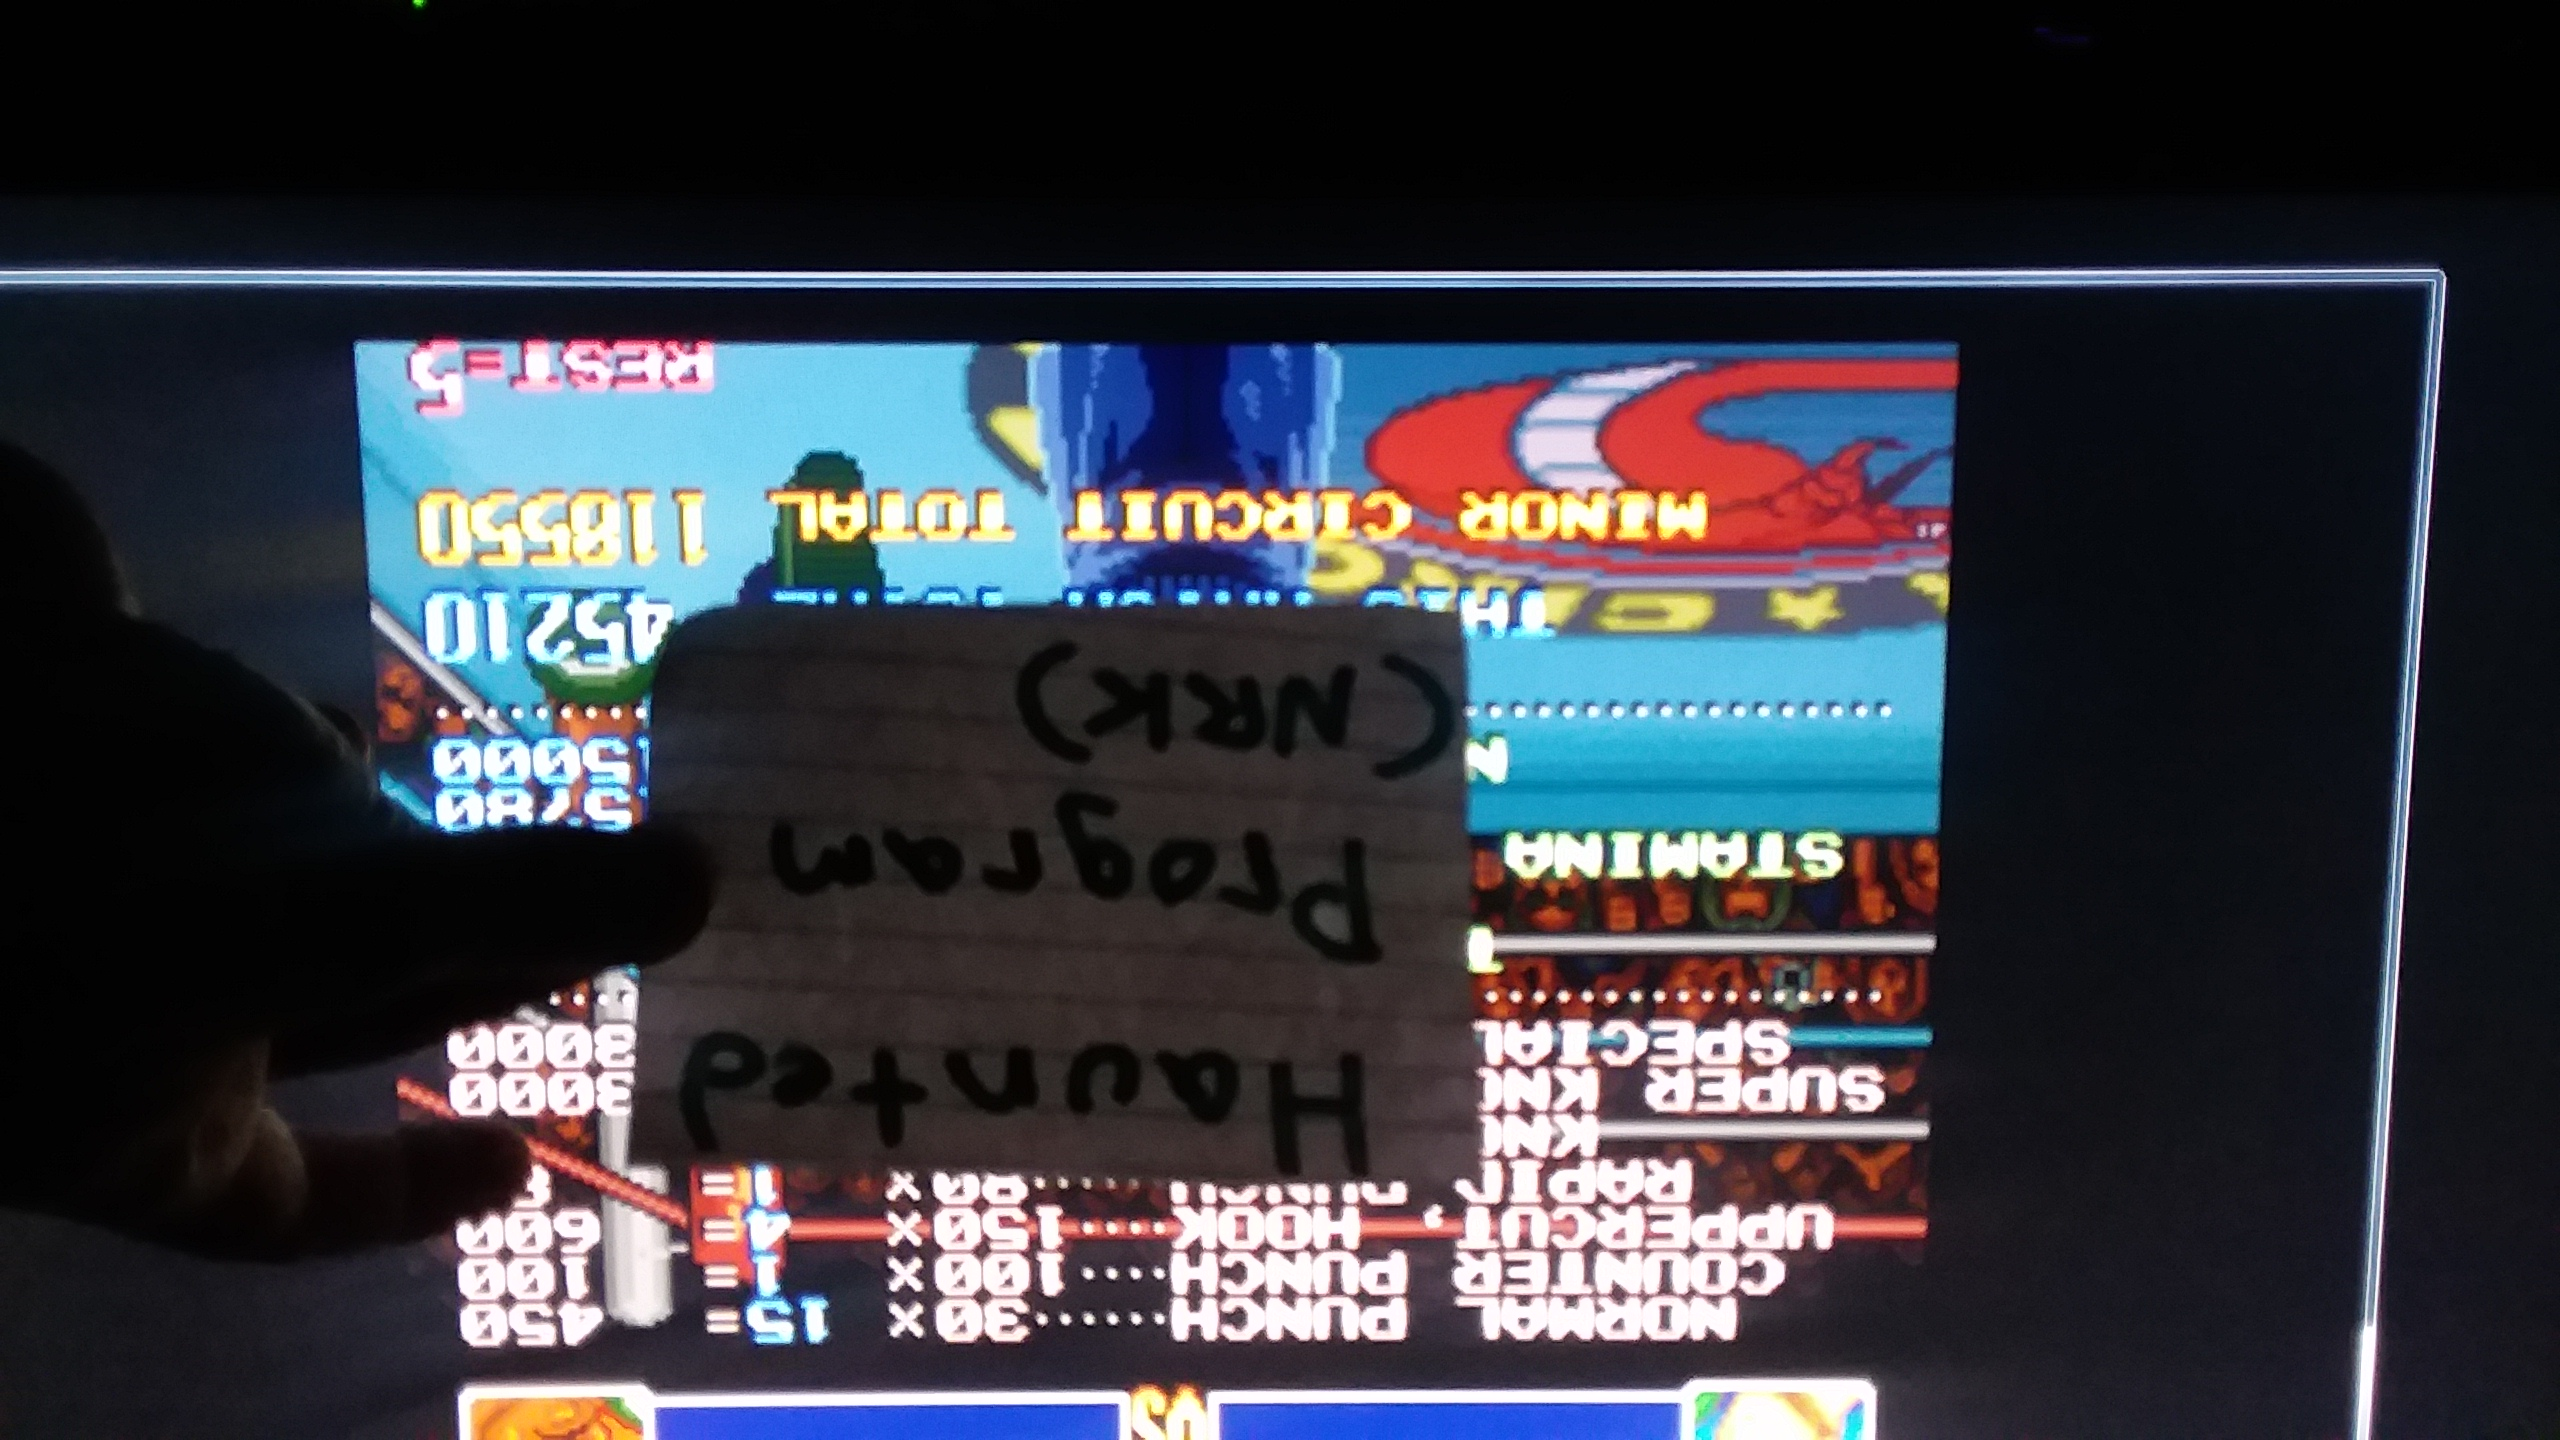 Hauntedprogram: Super Punch-Out!! [Piston Hurricane] (SNES/Super Famicom Emulated) 45,210 points on 2020-08-31 23:53:41